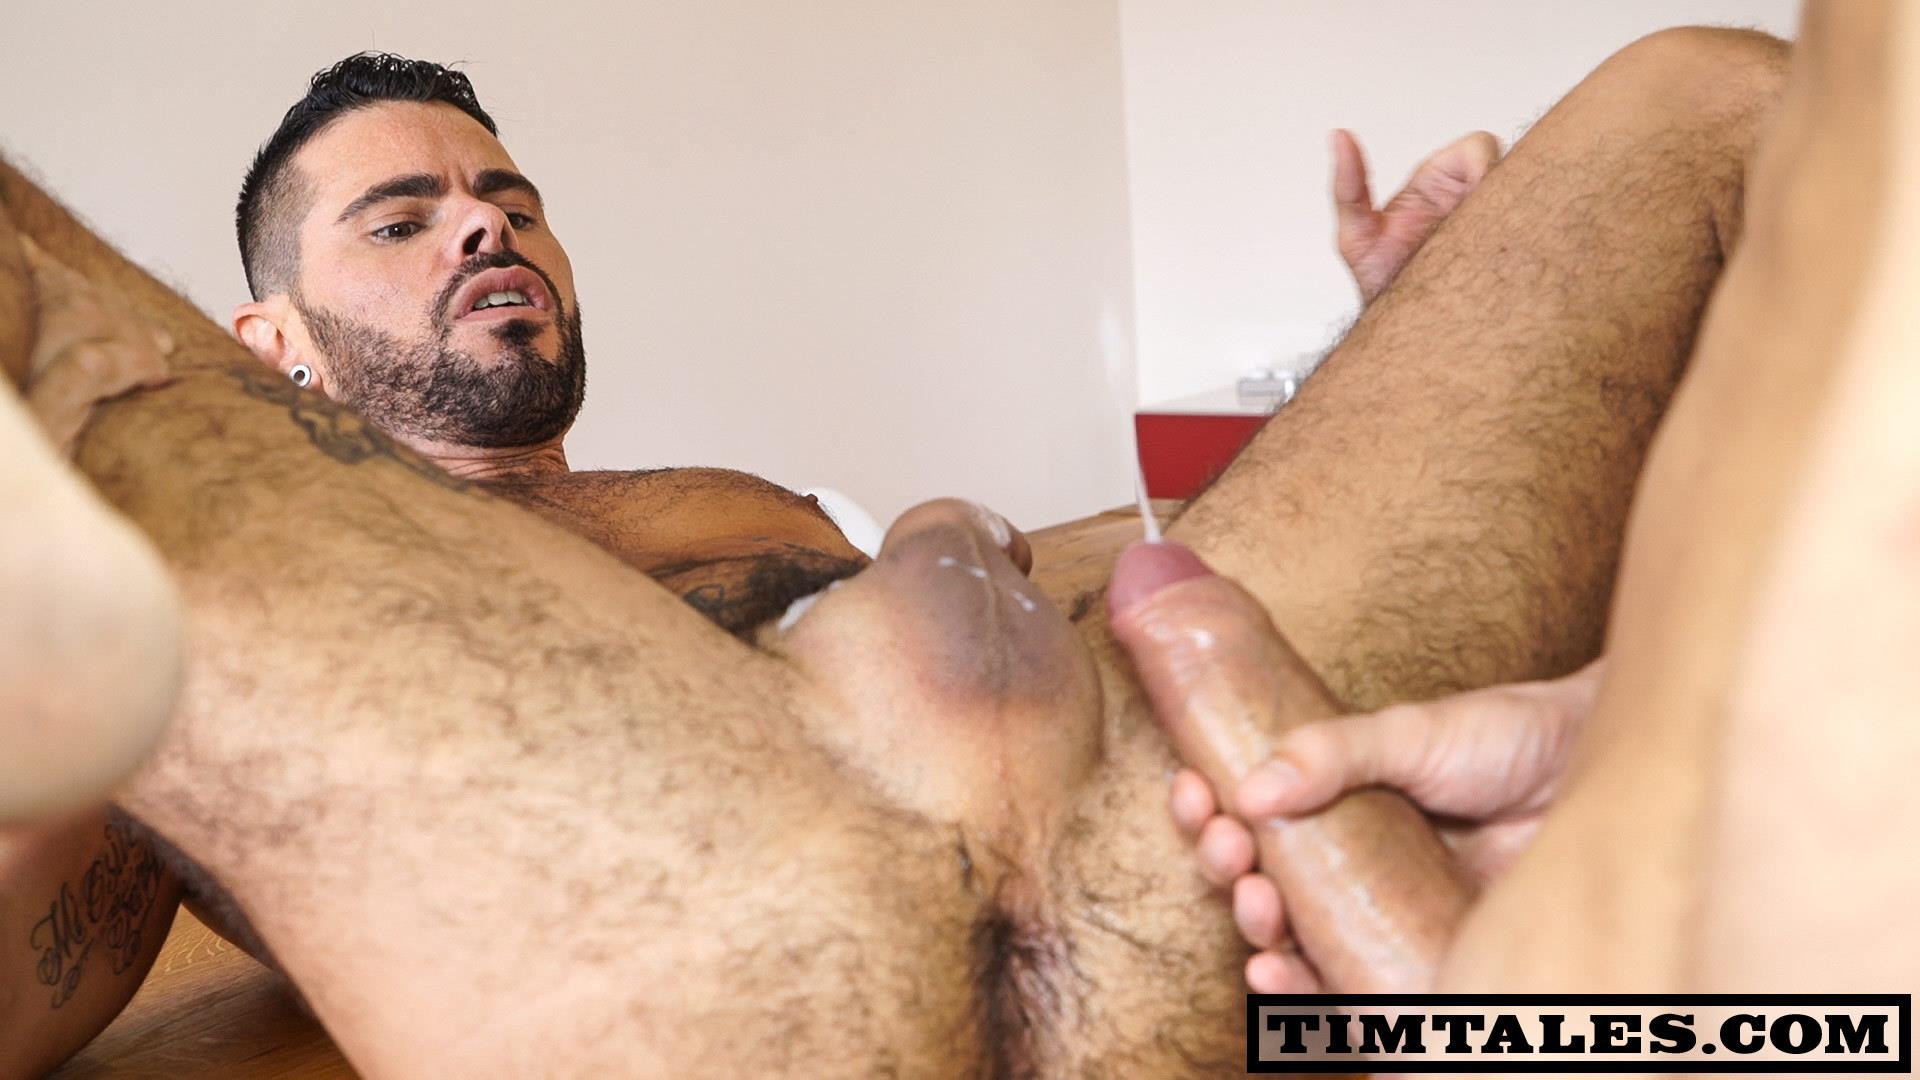 TimTales Esteban and Mario Domenech Big Uncut Cock Bareback Amateur Gay Porn 06 TimTales: Esteban Fucking Mario Domenech